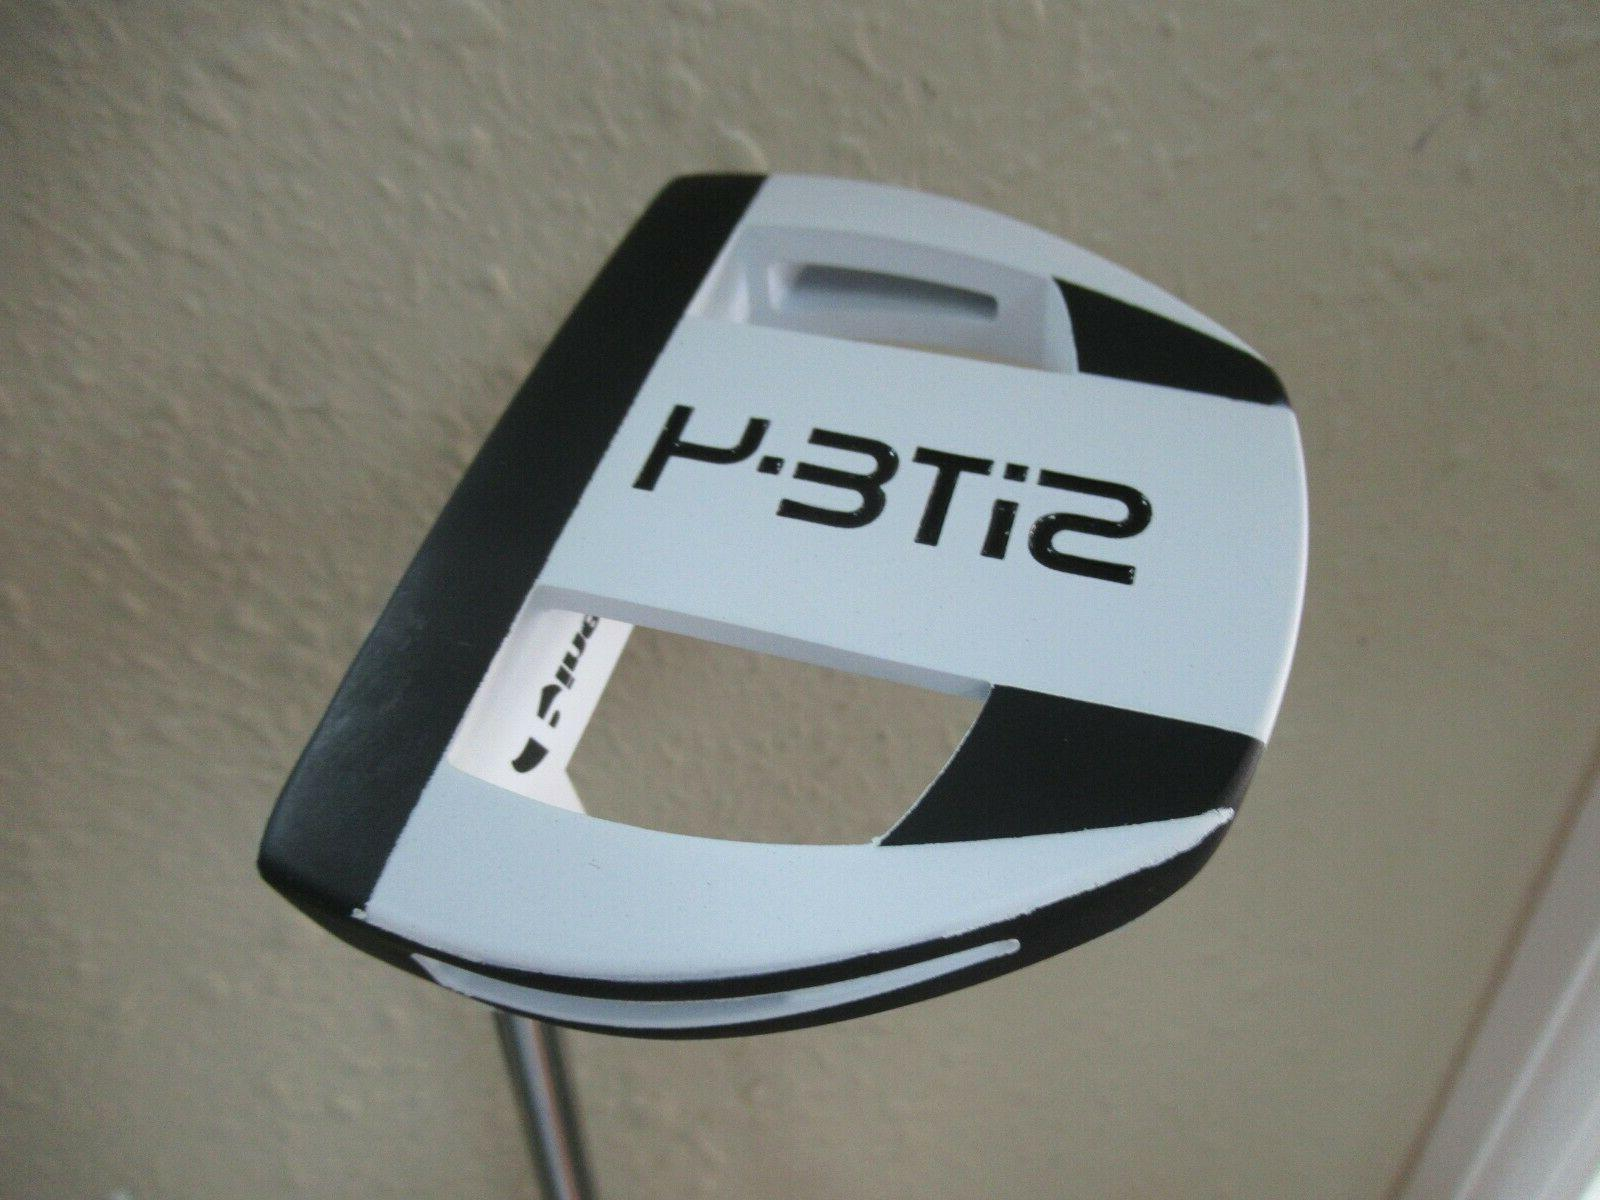 nice clean site 4 35 putter hc